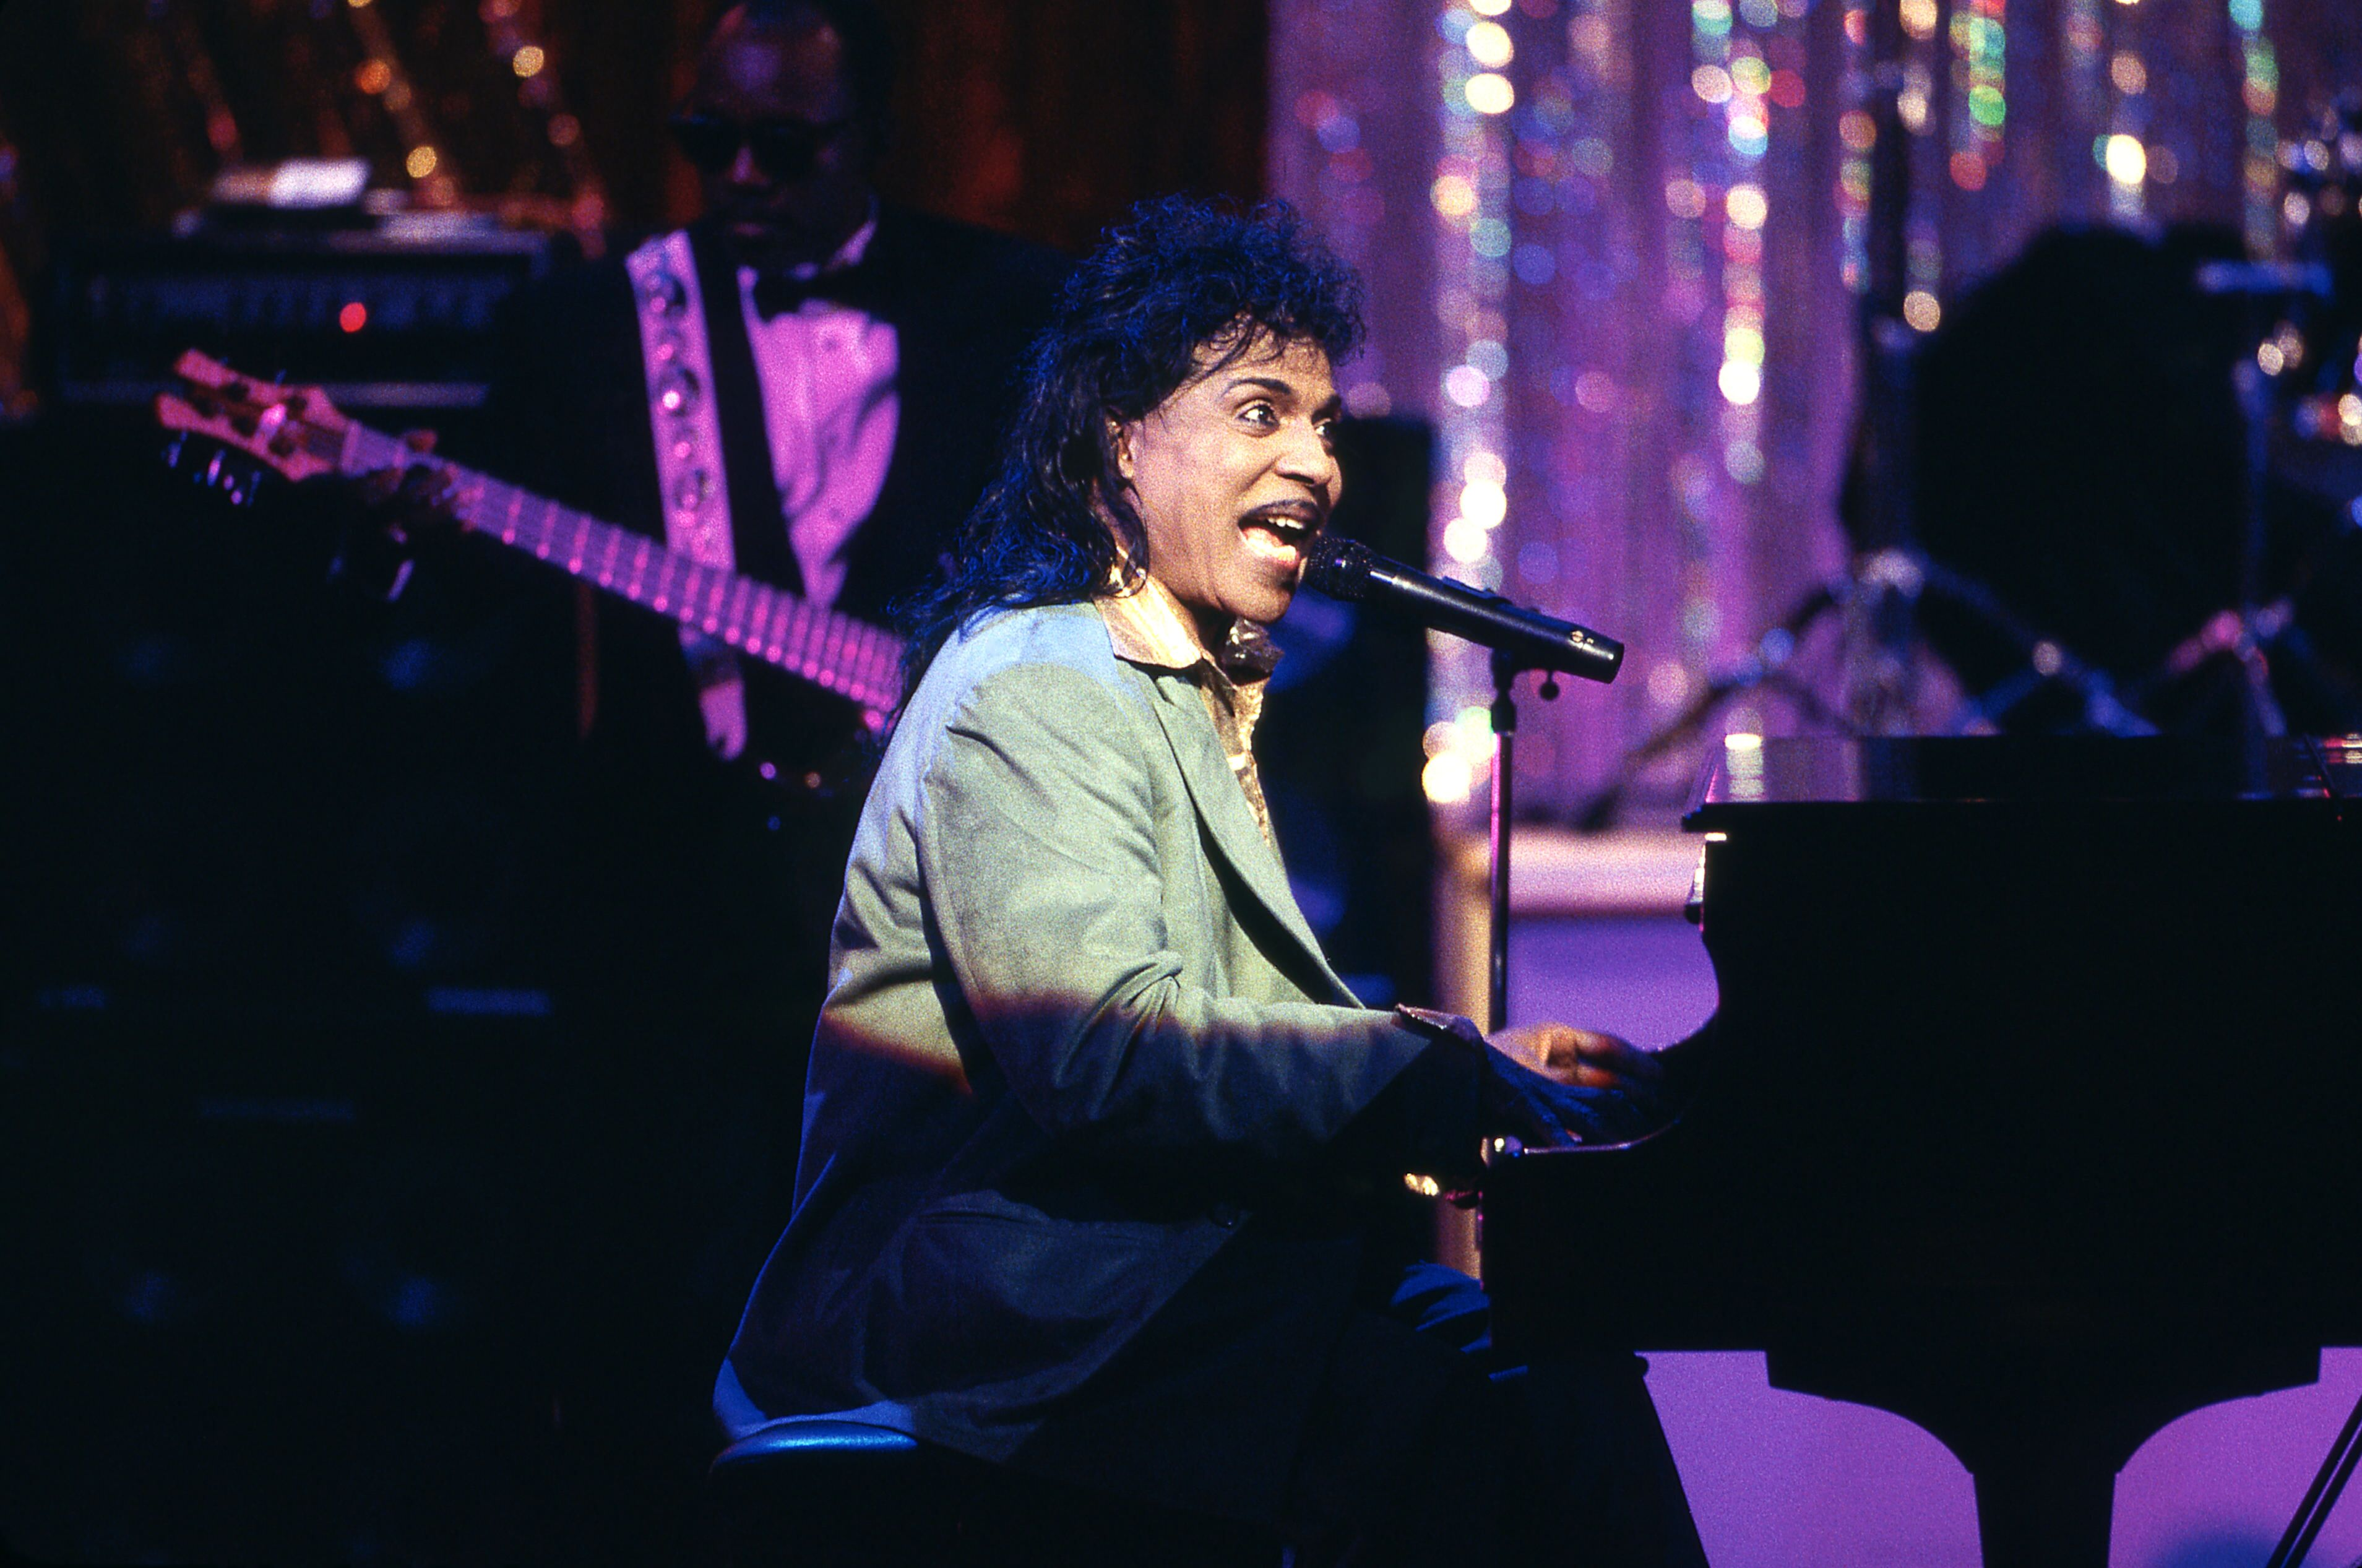 Singer-pianist Little Richard performing live at the Gala for the President at Ford's Theatre in Washington D.C. | Photo: Frank Micelotta /Walt Disney Television via Getty Images